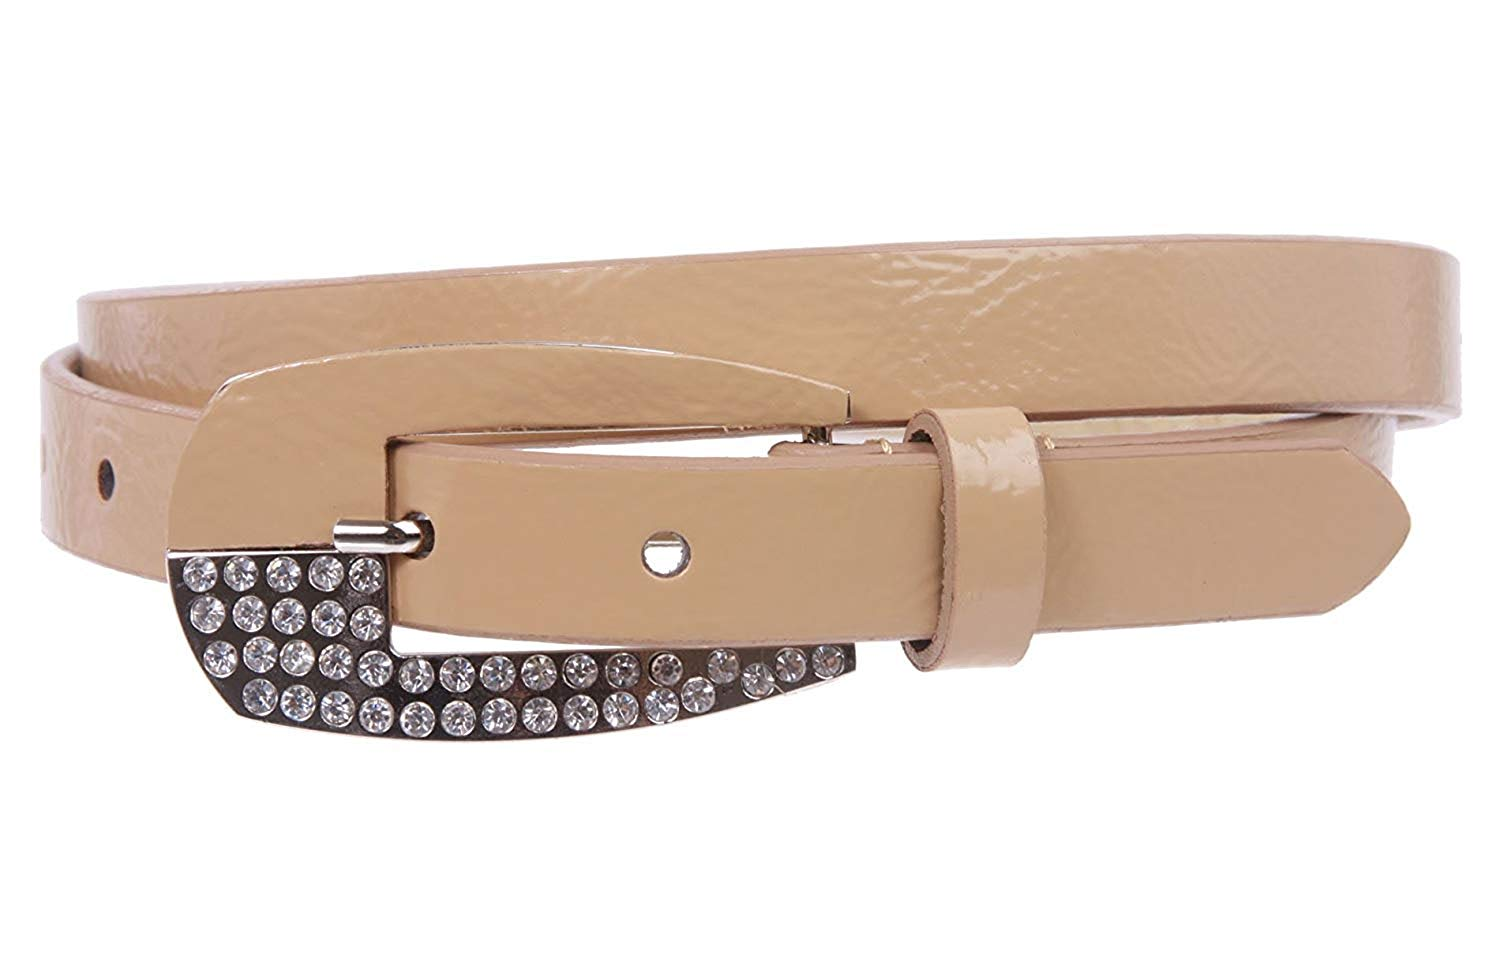 MONIQUE Women Western Single Prong Rhinestone 1.5 Belt Replacement Buckle